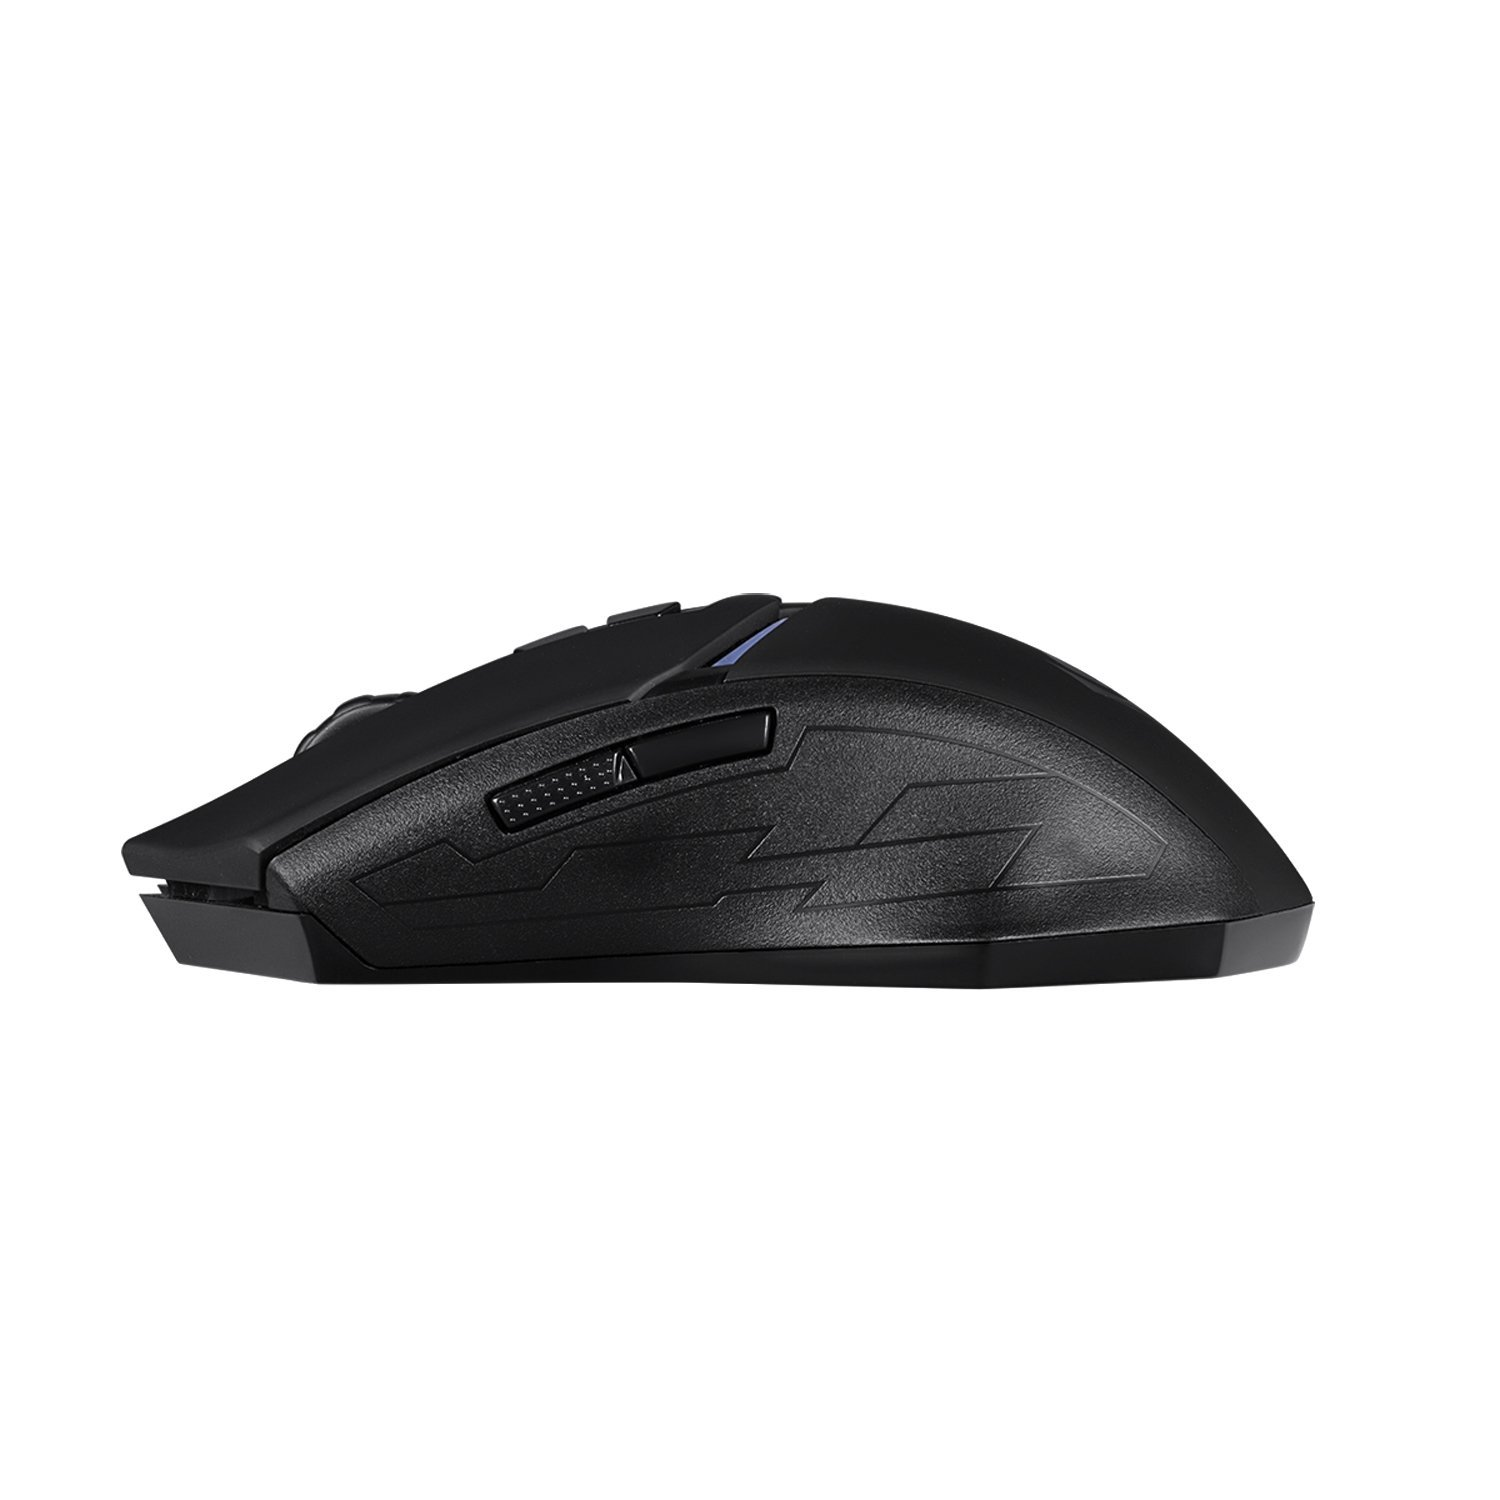 EagleTec MG010 2.4GHz Wireless 7-Button Gaming Mouse With Adjustable DPI (800, 1200, 1600, 2000, 2400)